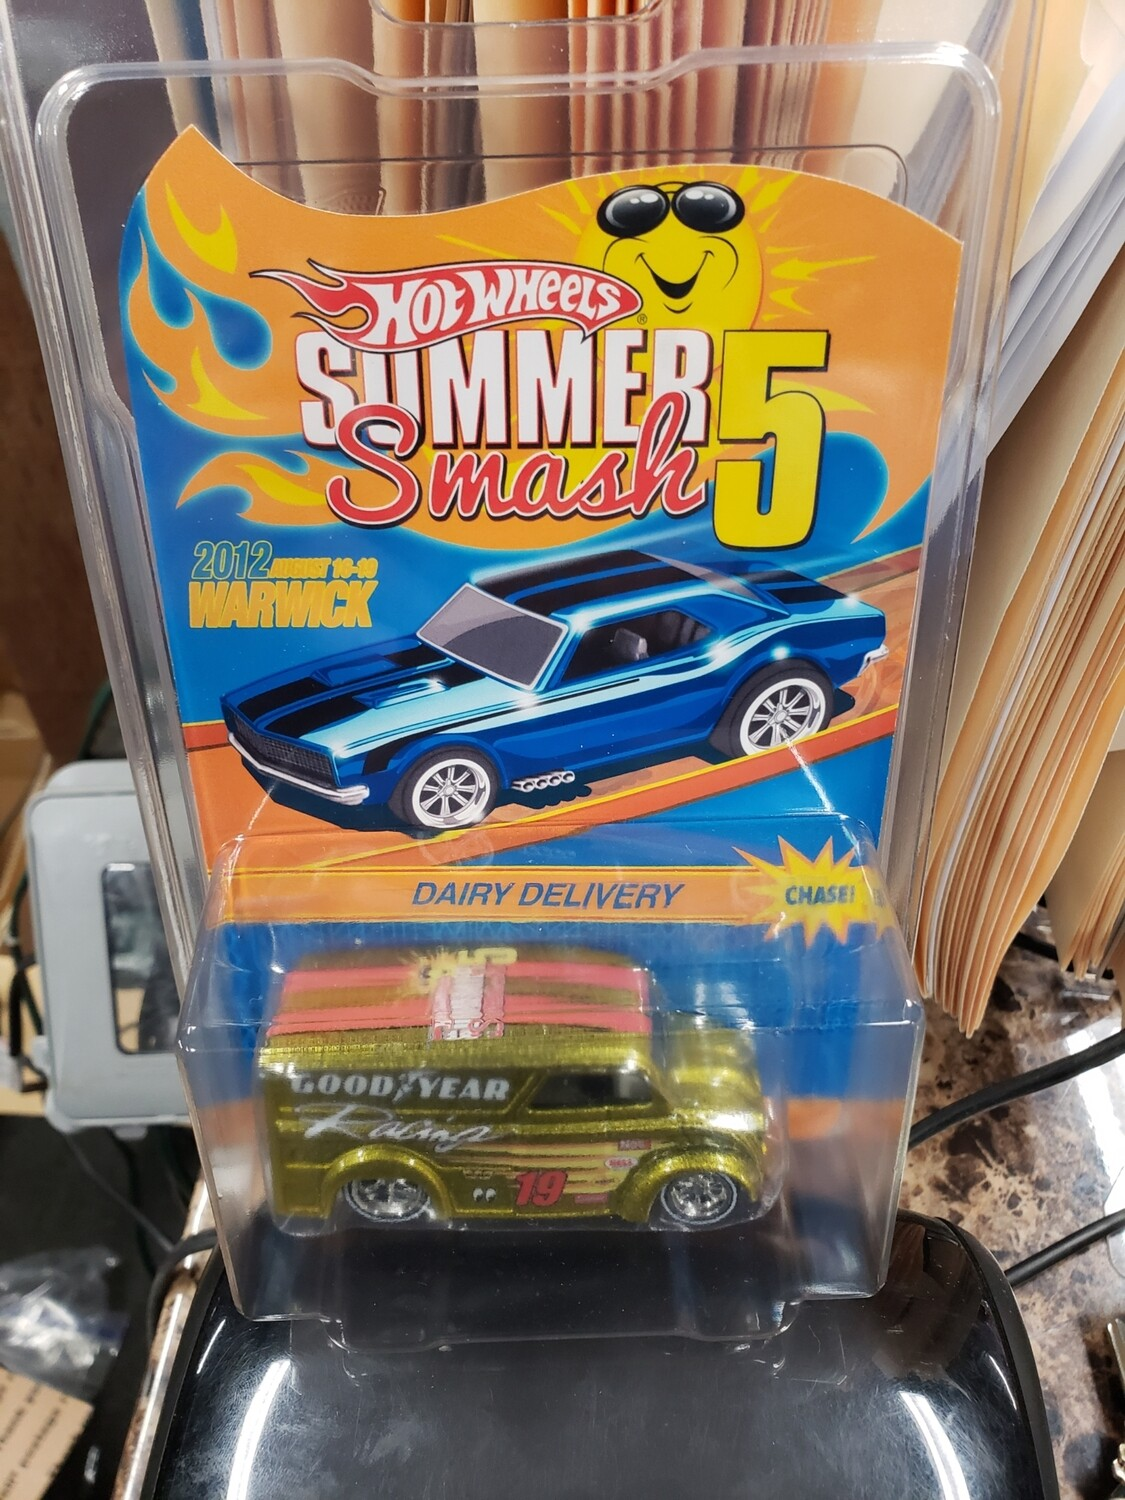 Summer Convention Series 10th Anniversary Dairy Delivery - Hot Wheels Summer Smash